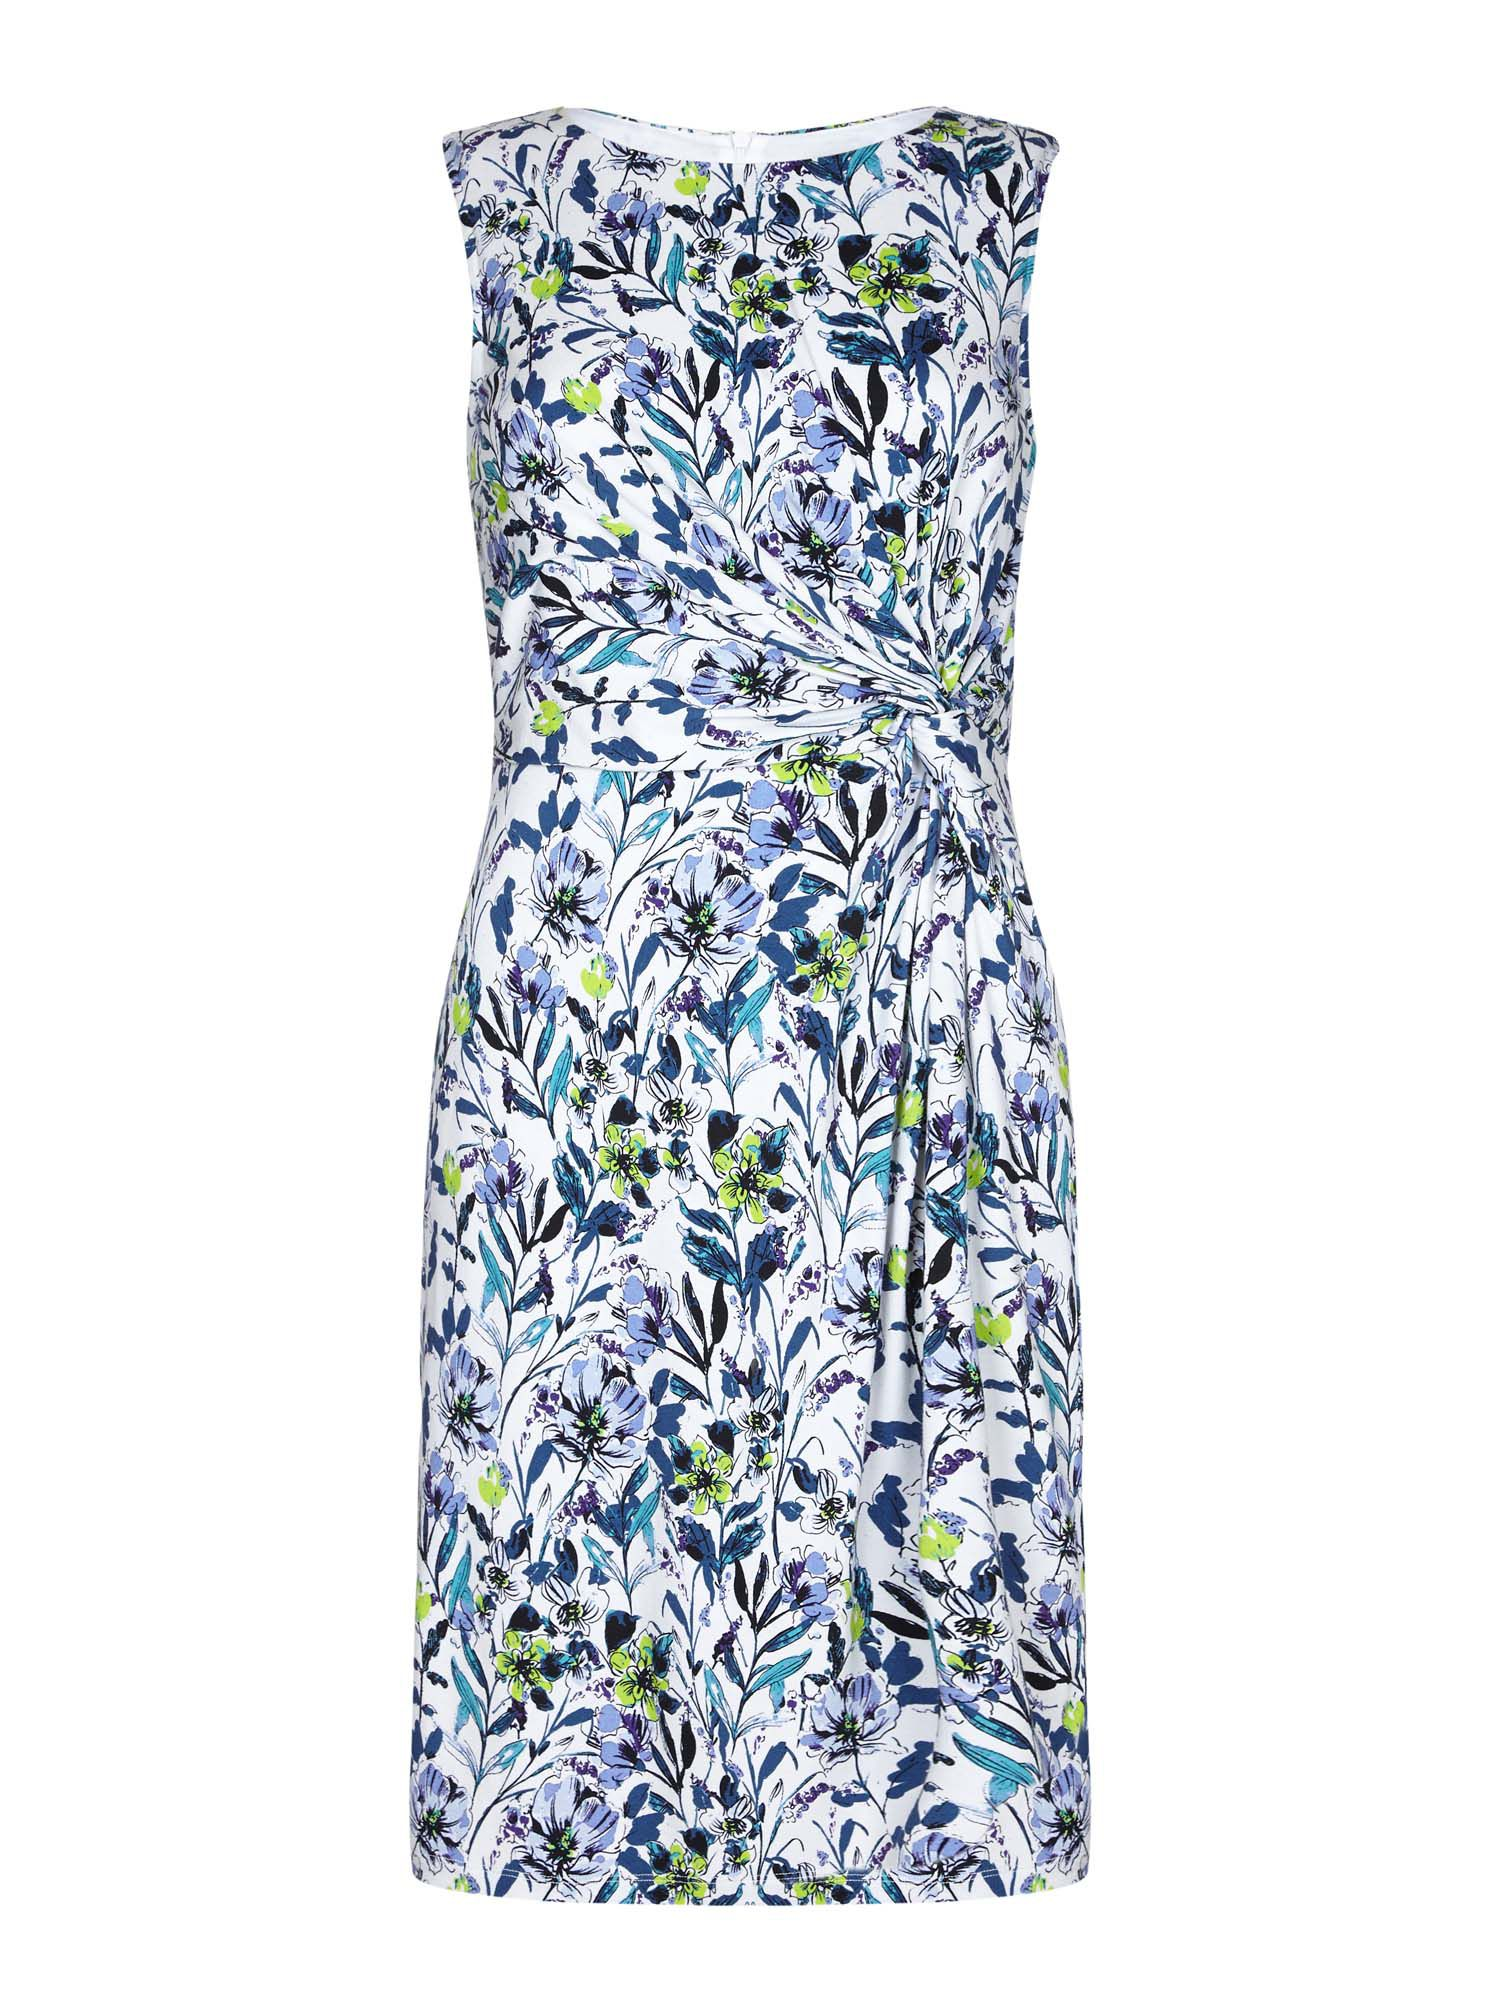 Yumi Floral Gathered Dress, Multi-Coloured